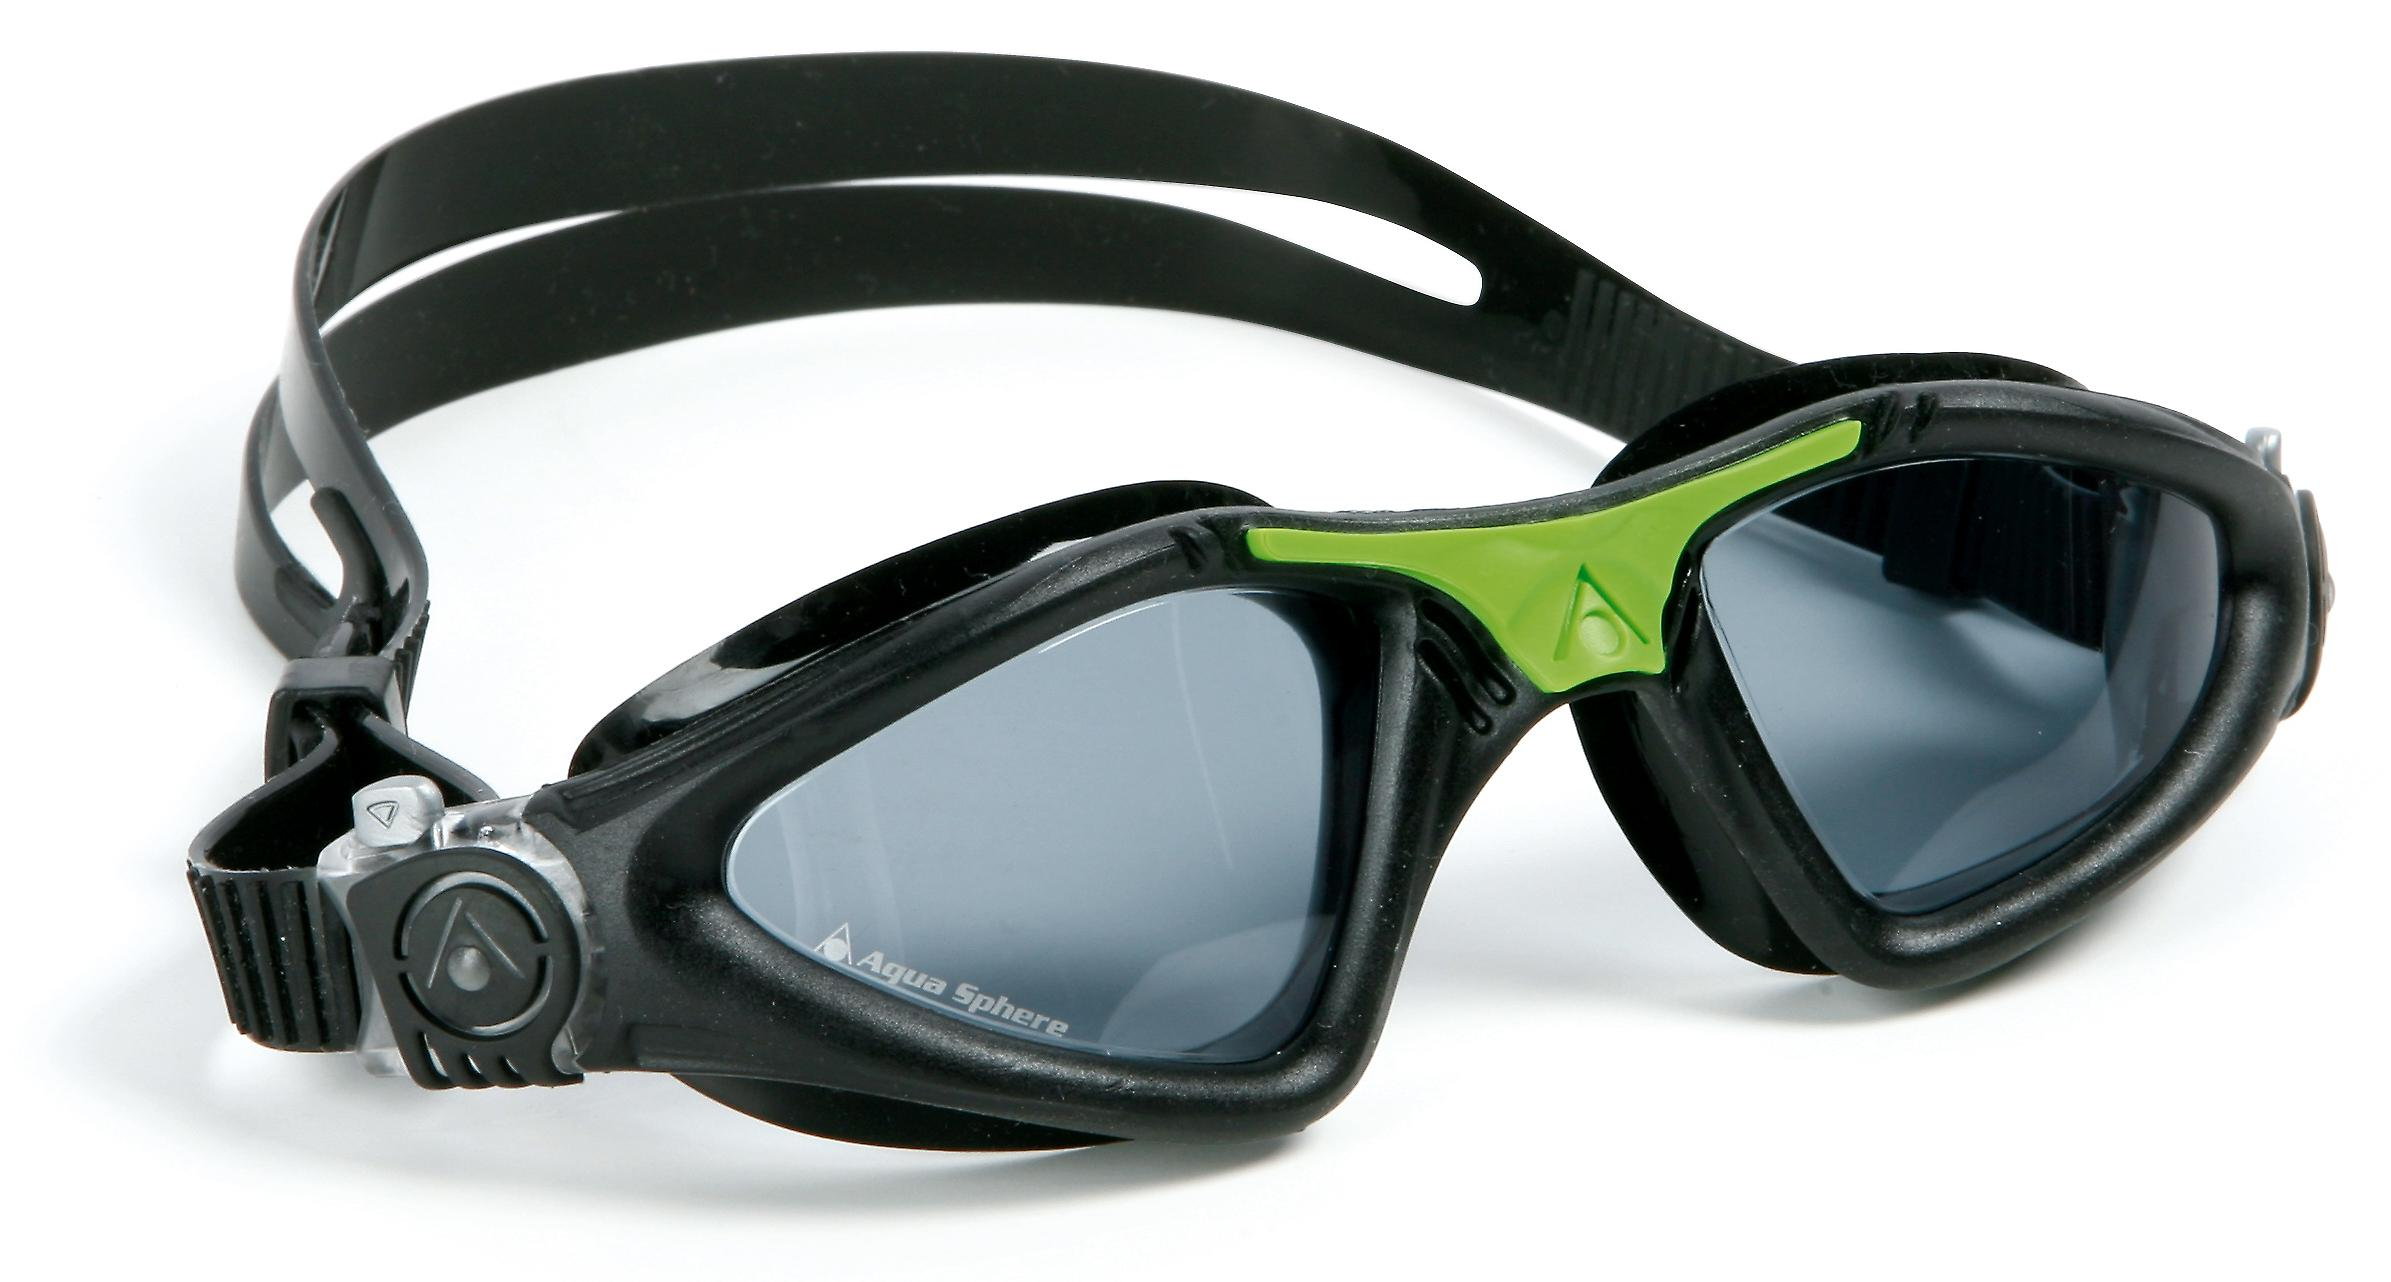 Aqua Sphere Kayenne Swimming Goggle - Smoke Lenses - Black/Green